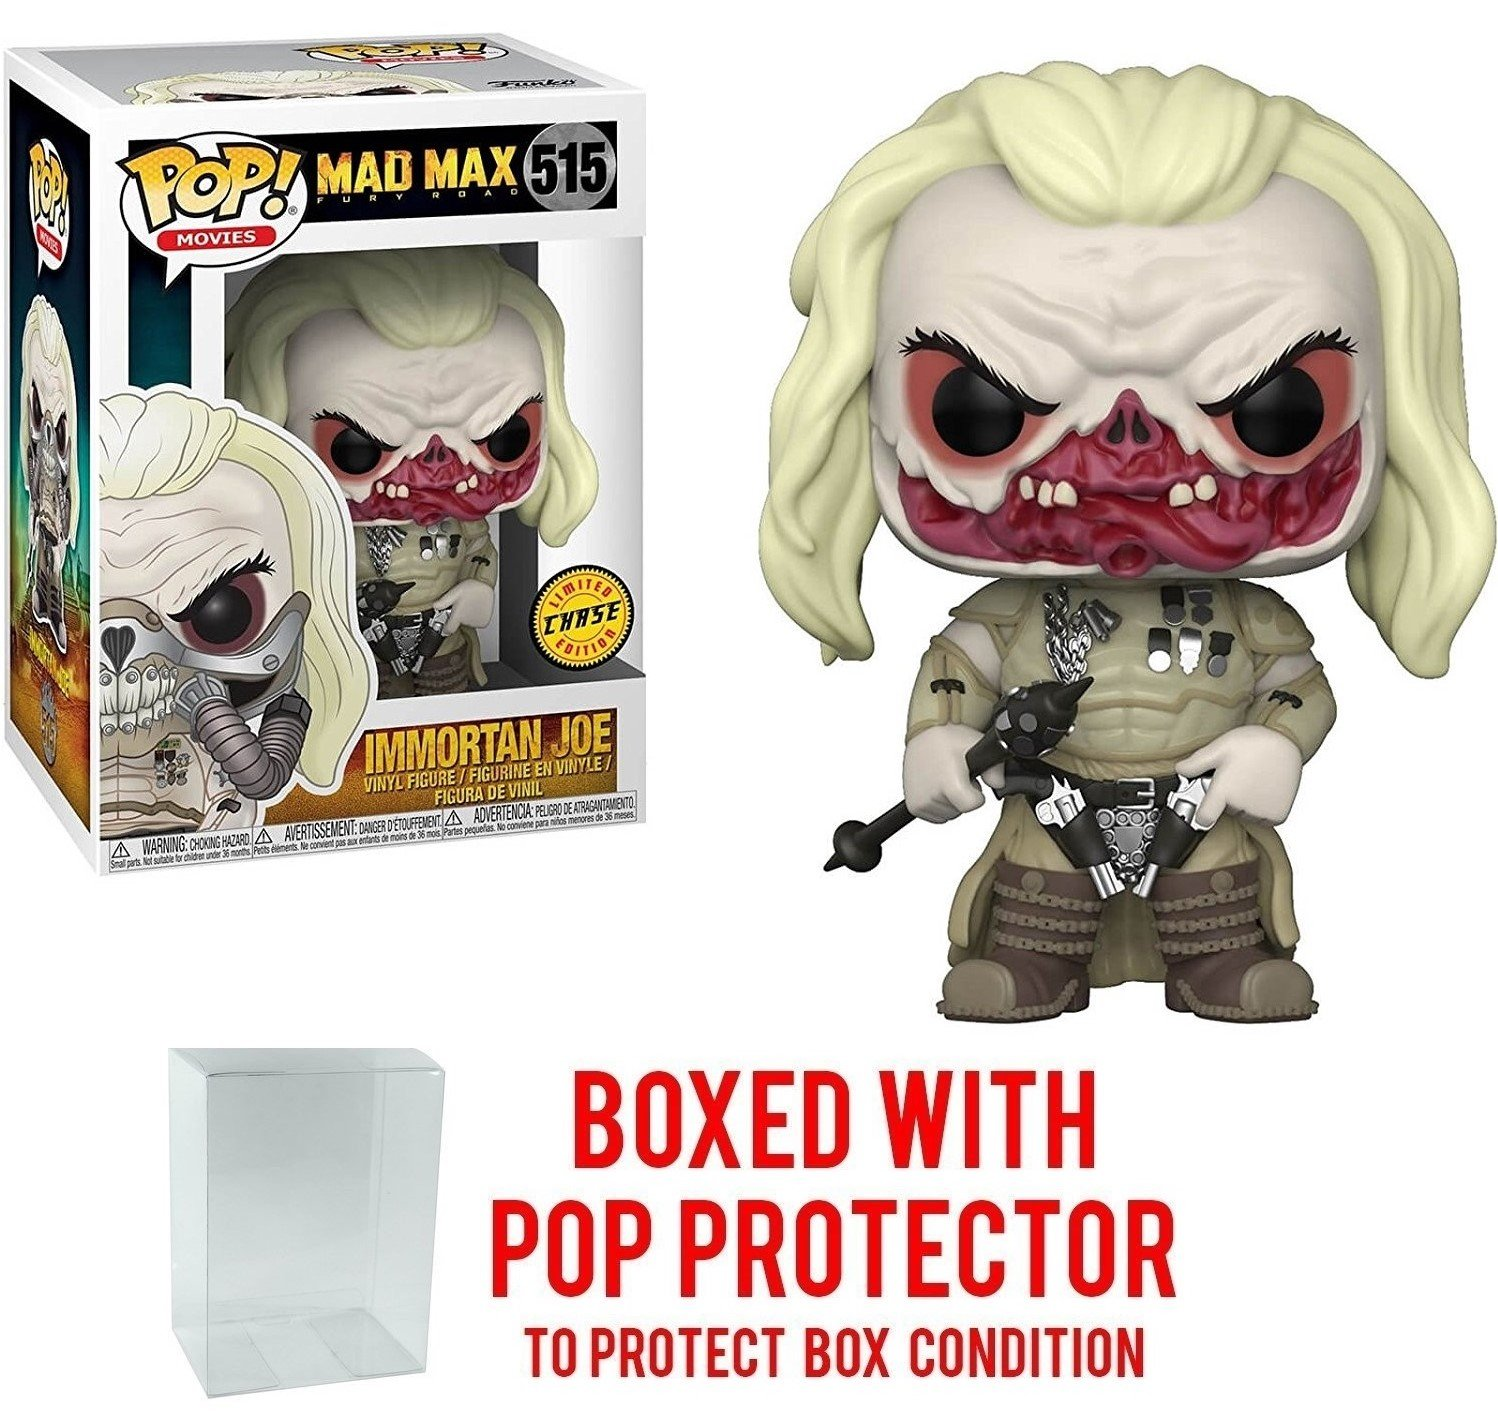 Funko Pop Películas: Mad Max Fury Road - Figura de vinilo Immortan Joe CHASE Variant Limited Edition (Se incluye con el estuche POP BOX PROTECTOR)